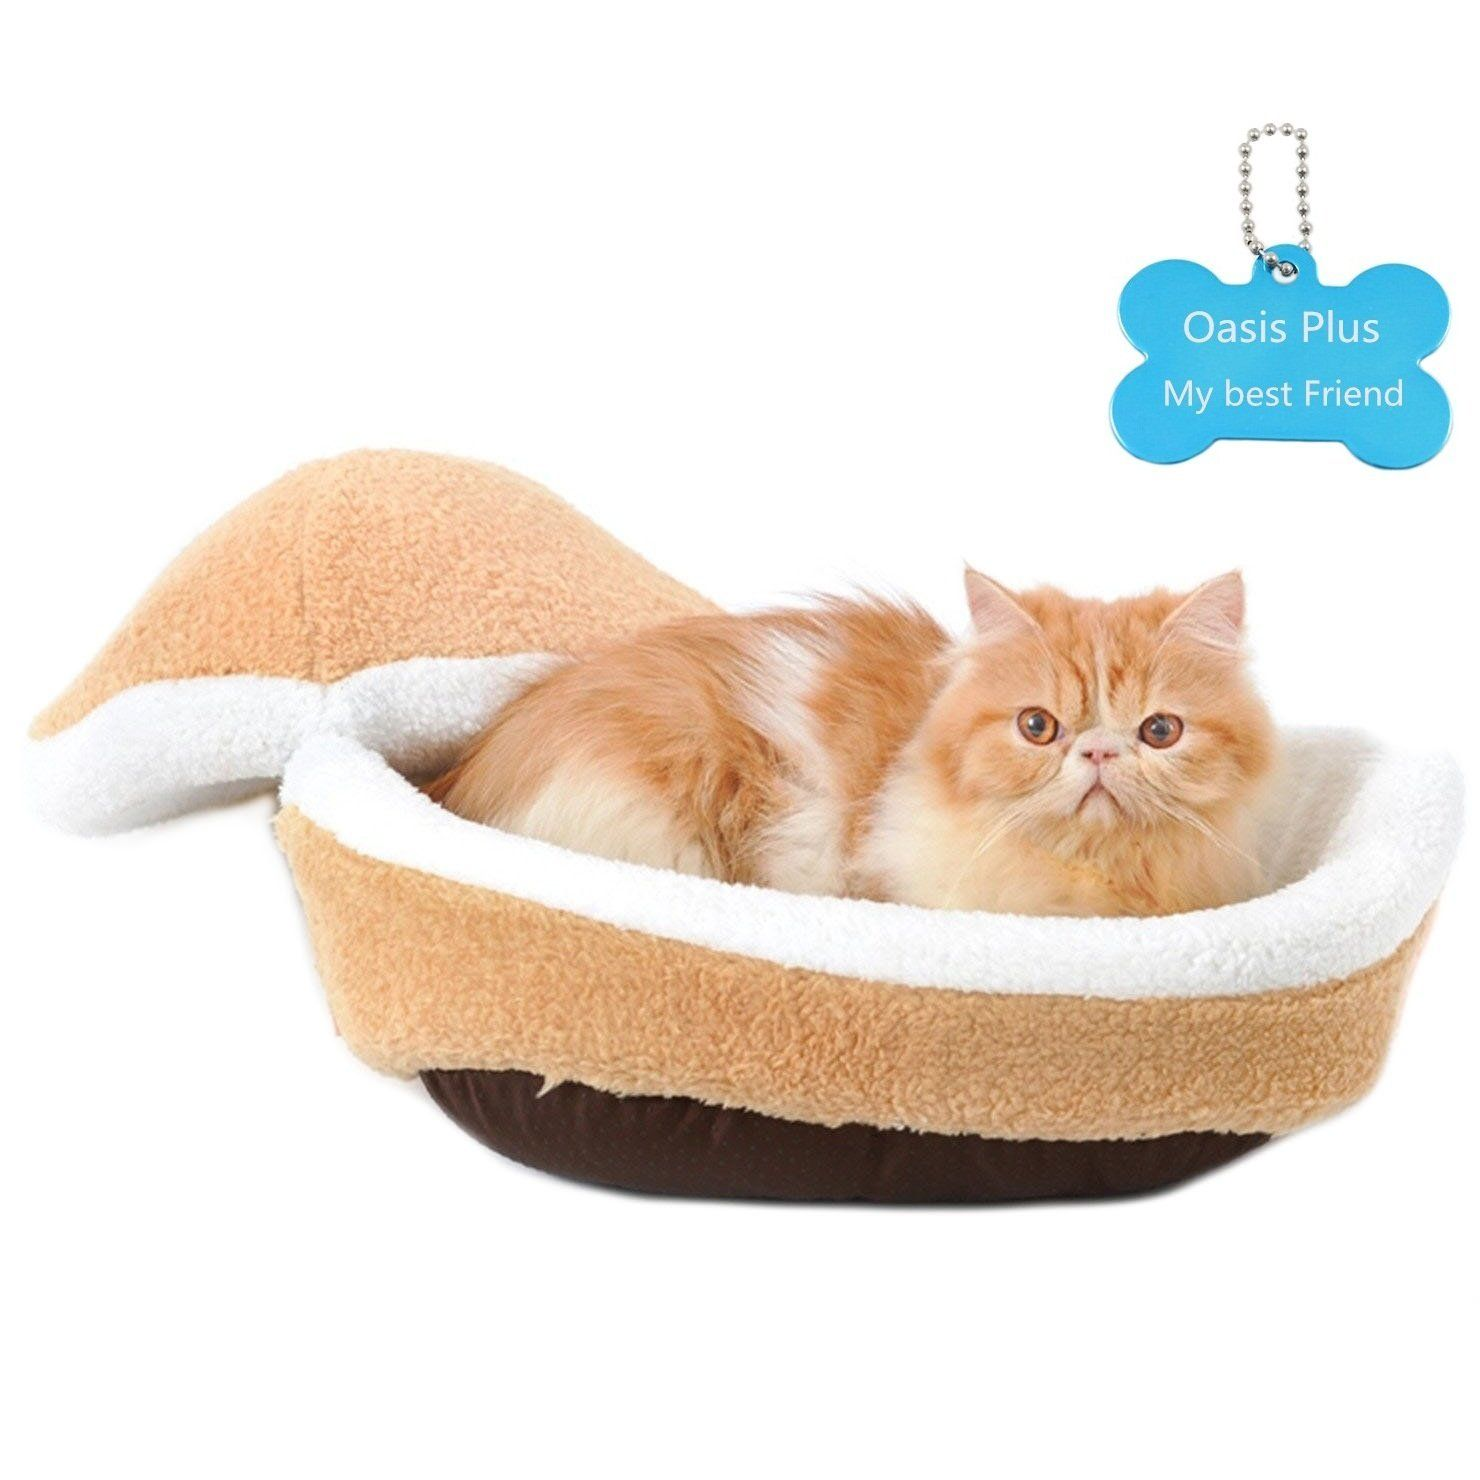 Oasis Plus Hamburger Style Windproof Cat Bed House Shell Nest Kitten Litter Thermal Hiding To Vi Dog Sleeping Bag Washable Pet Bed Warm Dog House